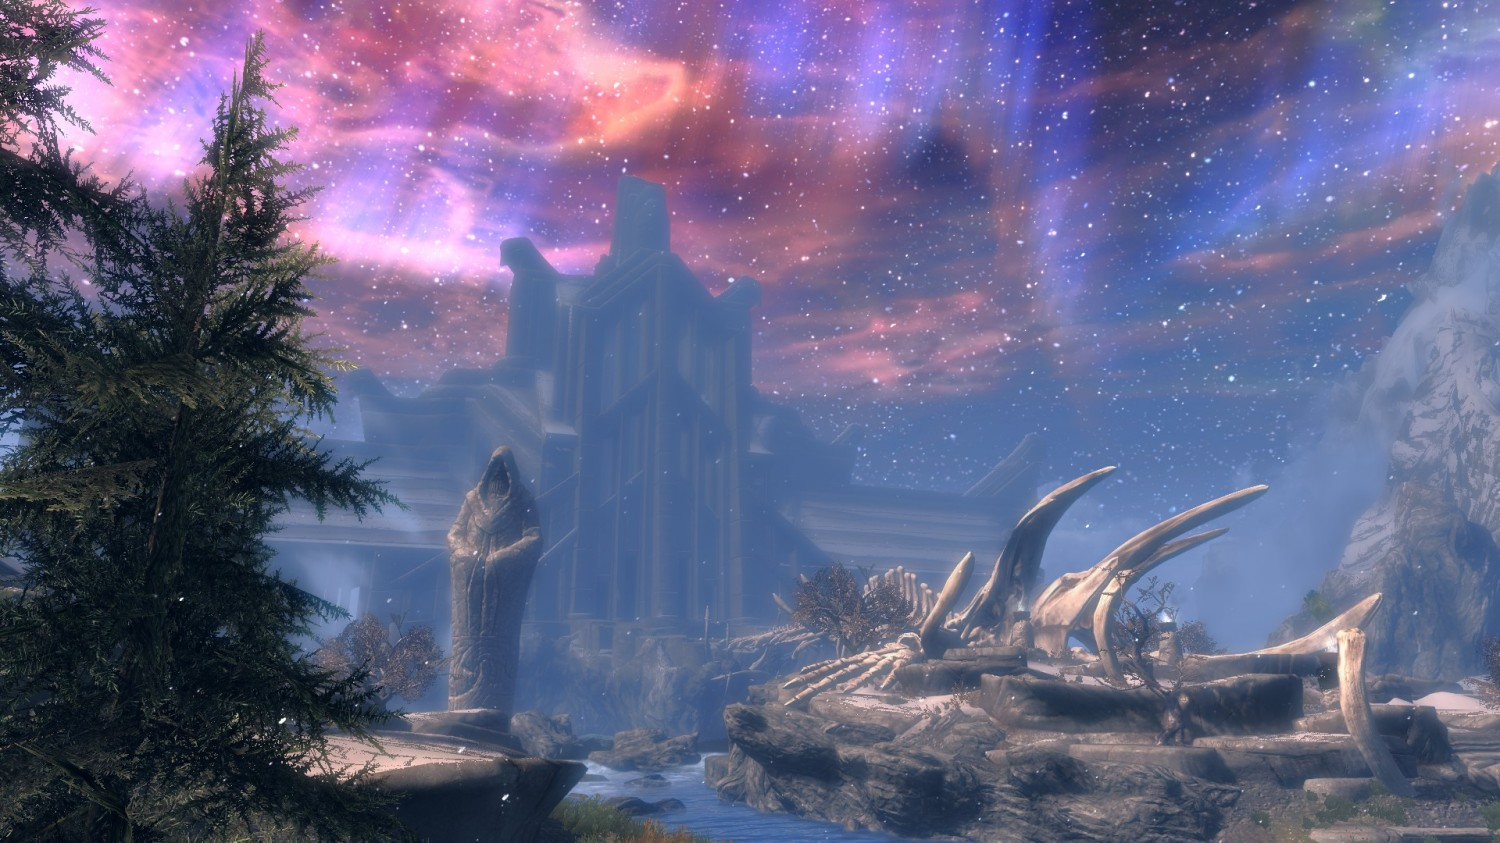 skyrim___sovngarde_by_happyknight_d54uwai